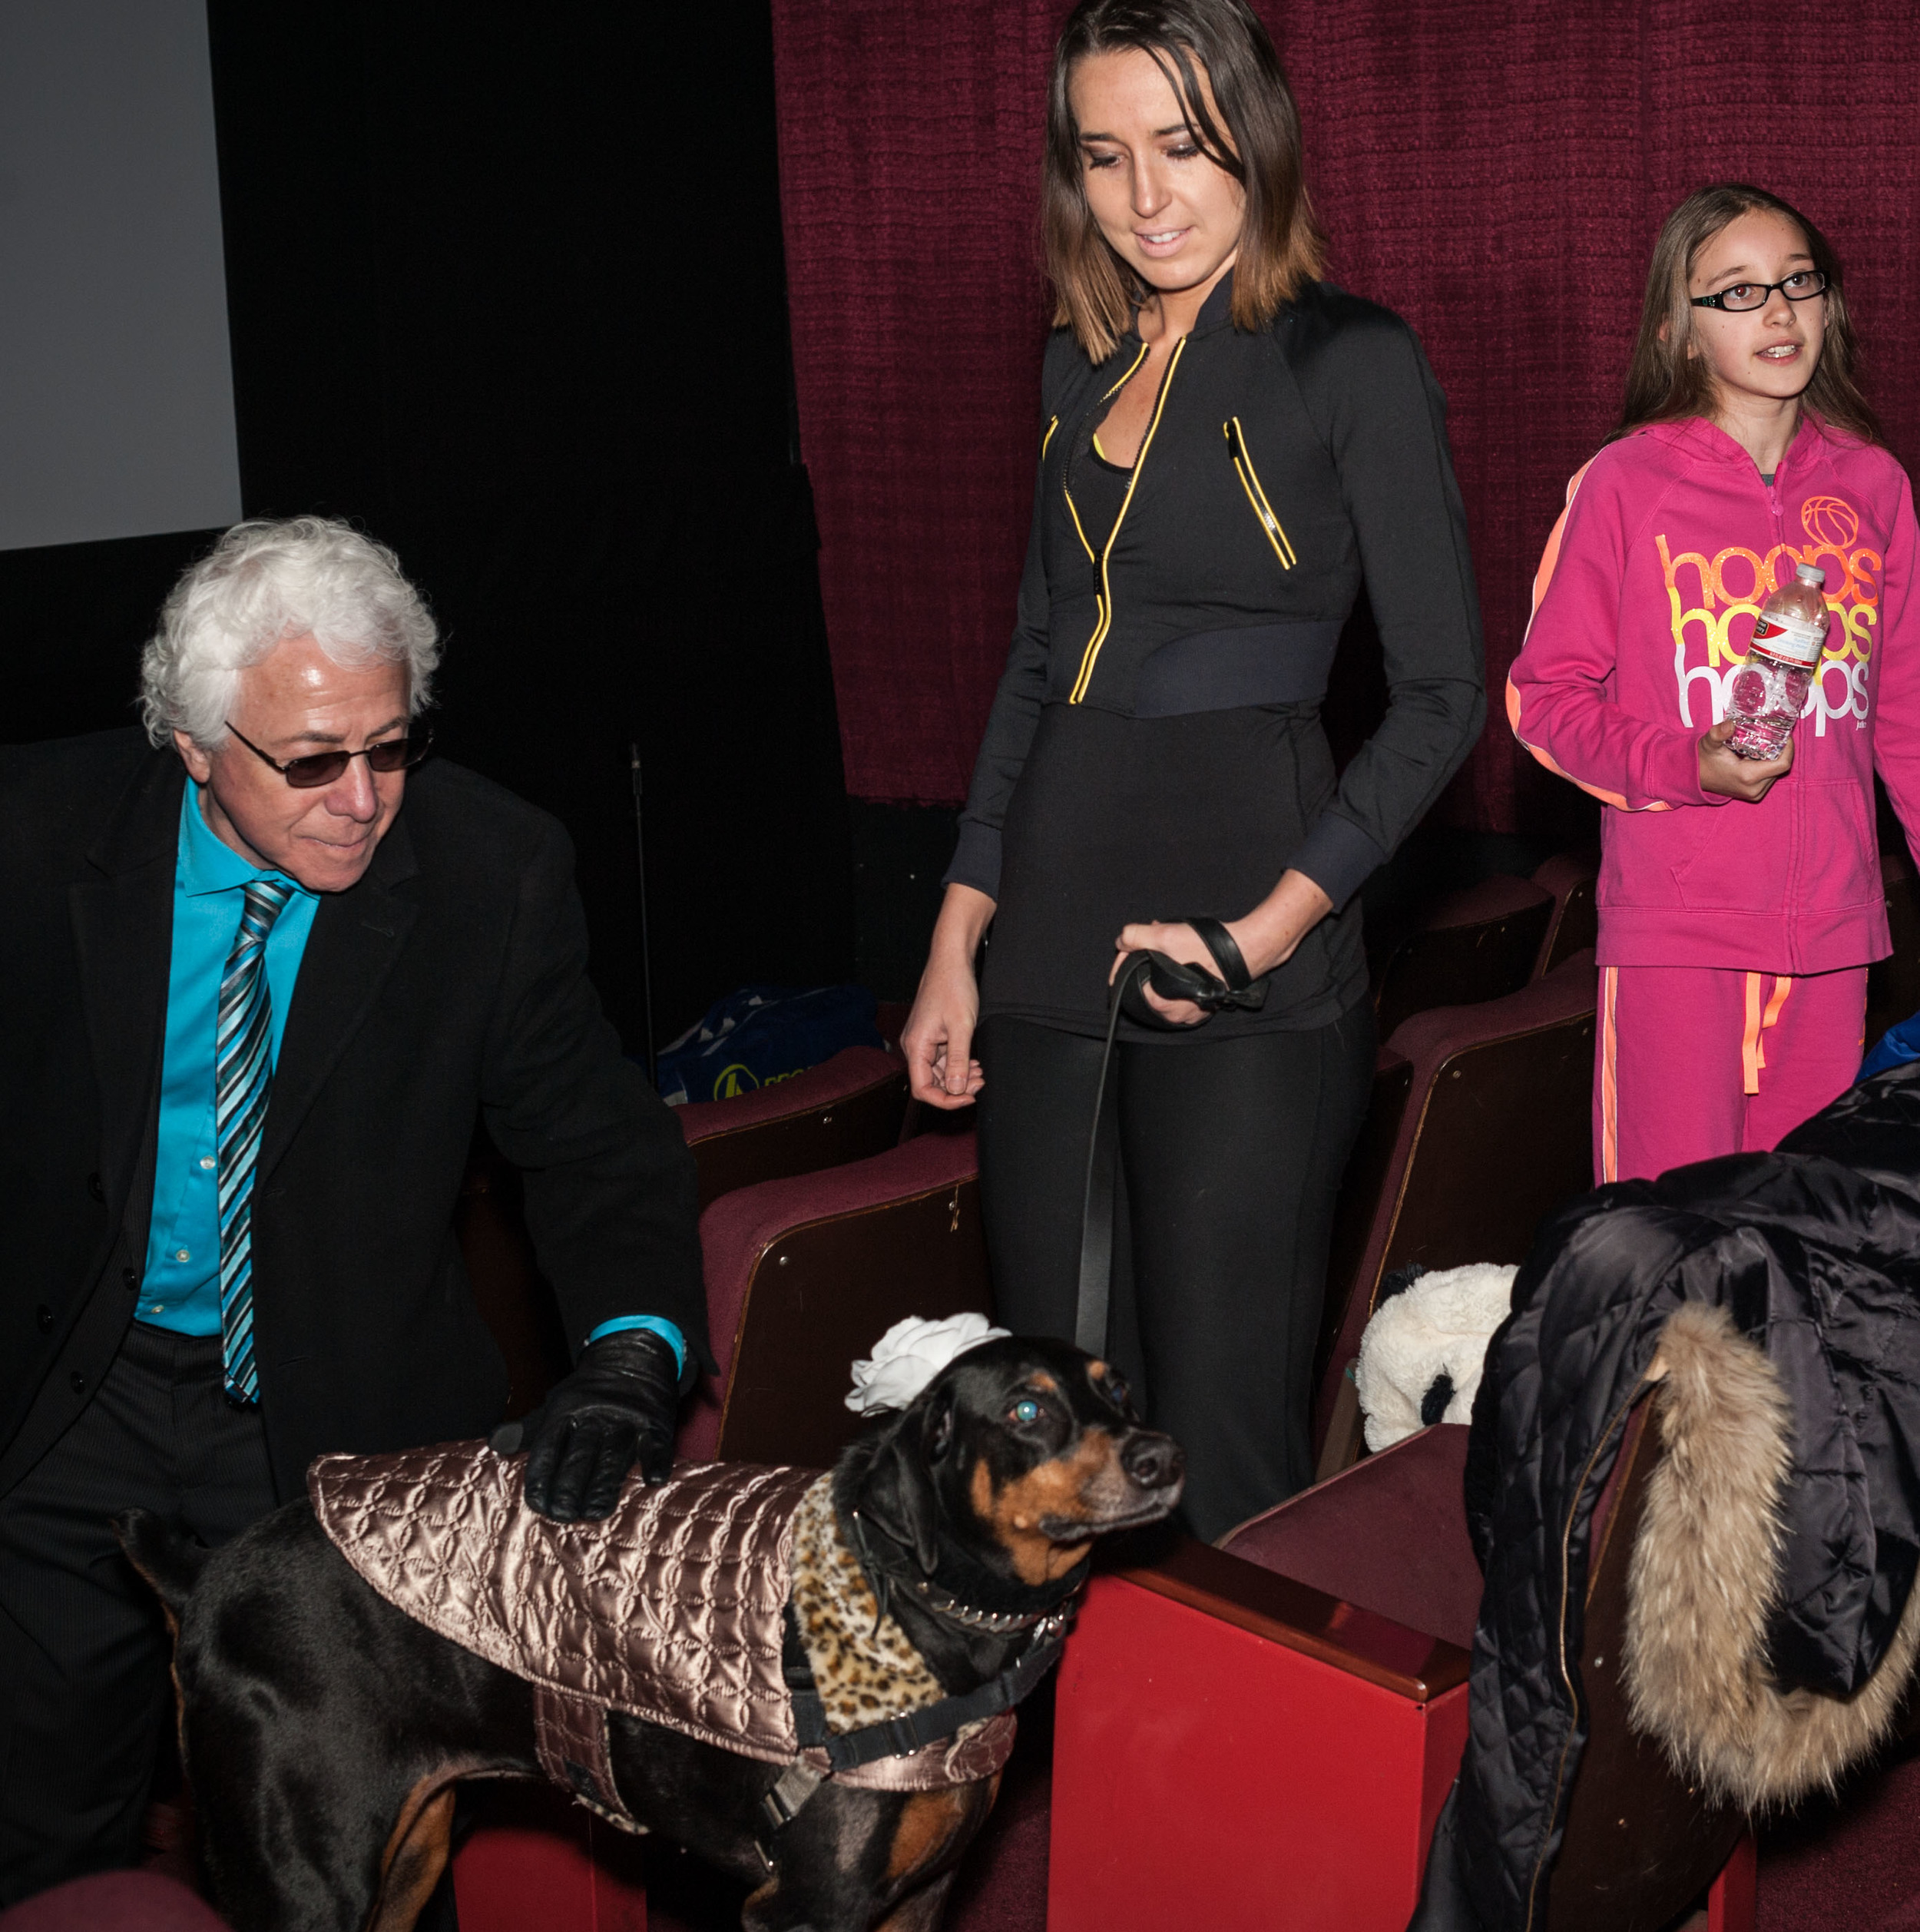 Gene Gittelson, Ruby, Liza and Johanna Ree / Trylon microcinema / Minneapolis, Minnesota / November 20th, 2014 / Photo by Gamini Kumara